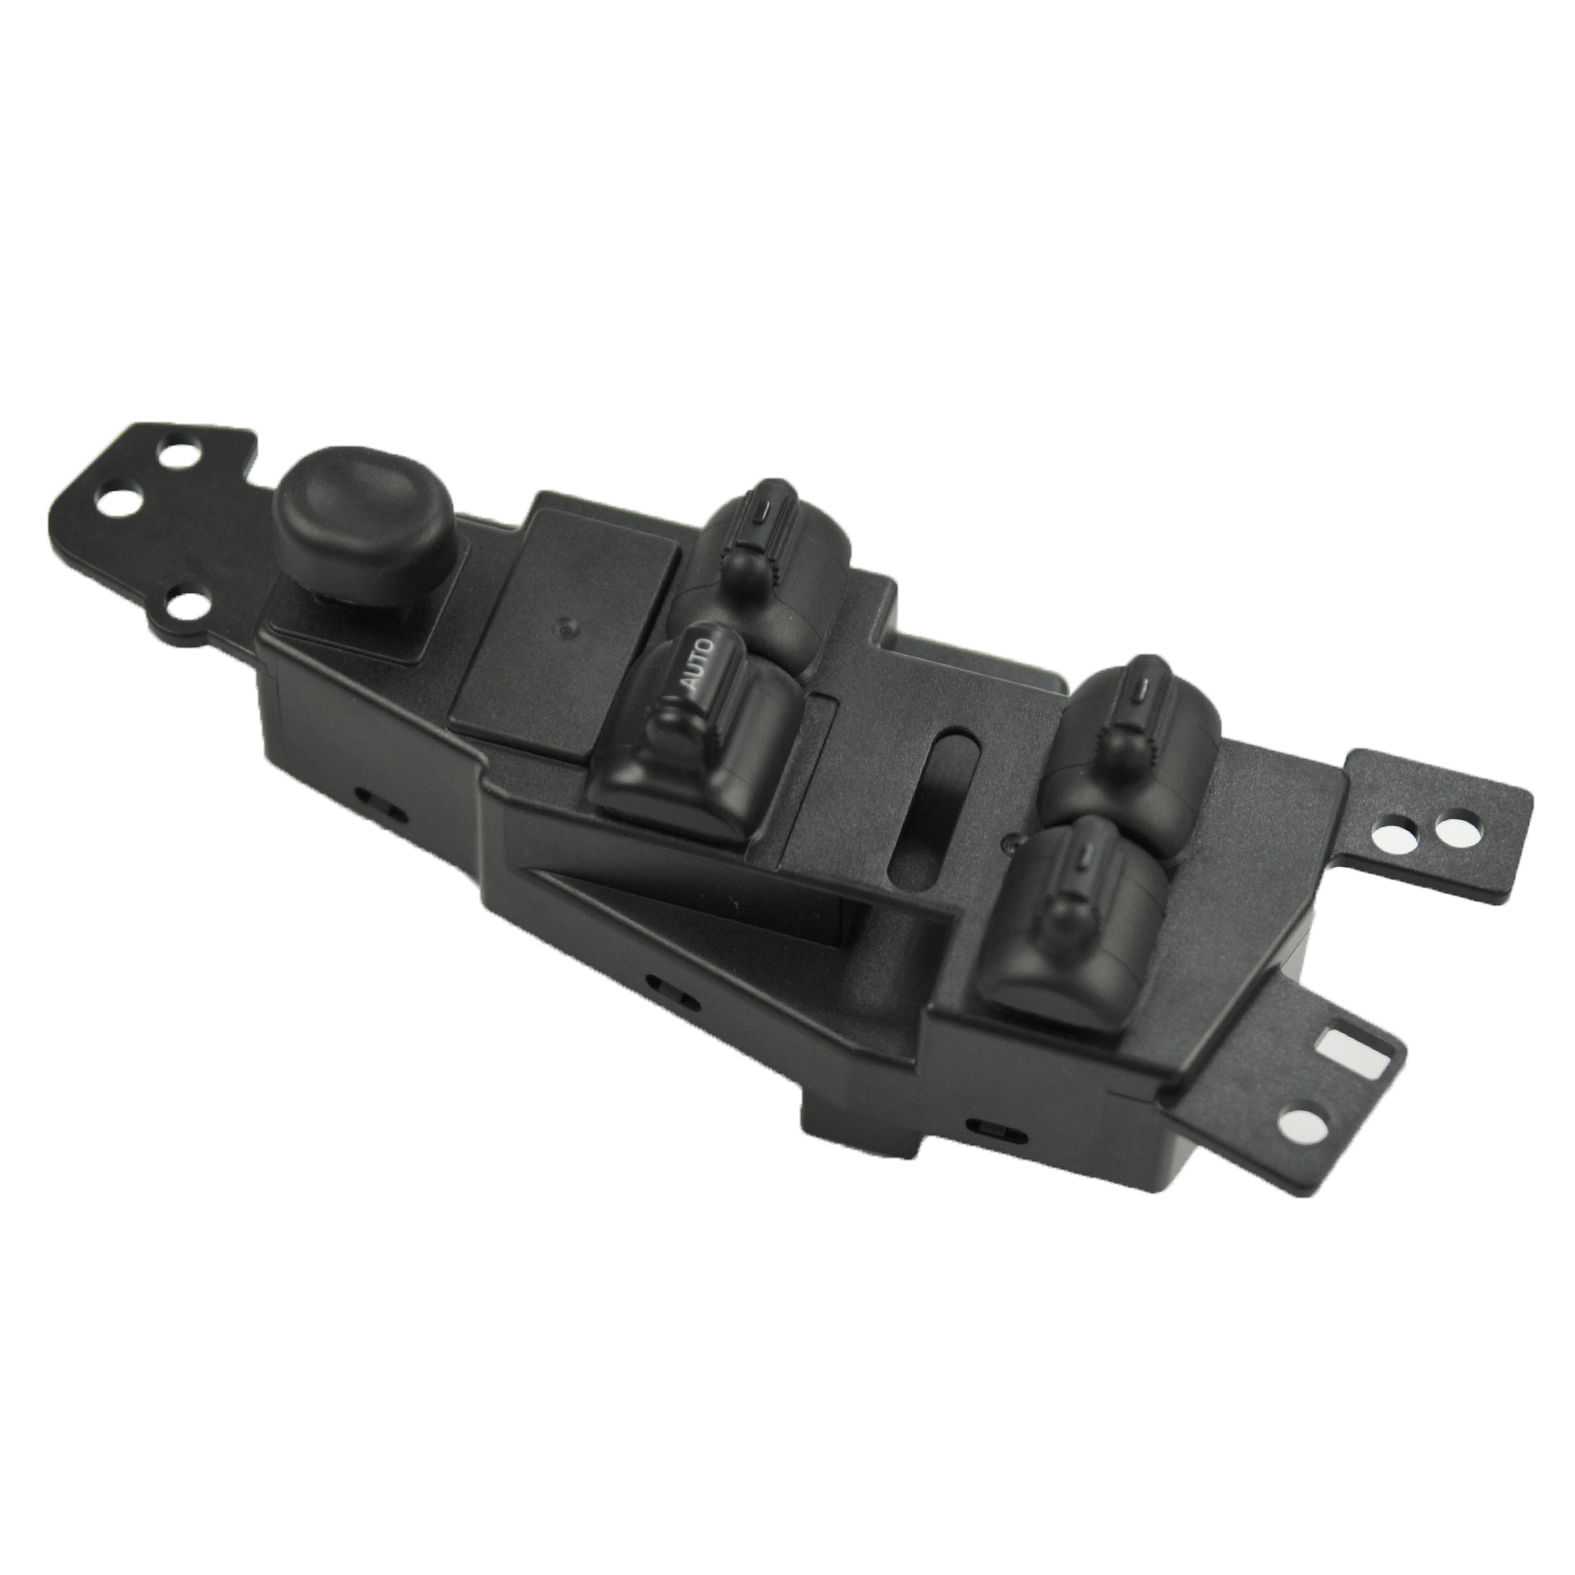 E2c Front Left Master Power Window Switch For Dodge Intrepid Stratus 96 Fuse Box Sebring 300m Oe 4608558aa 5026004aa 901 400 Ds 1181 In Car Switches Relays From